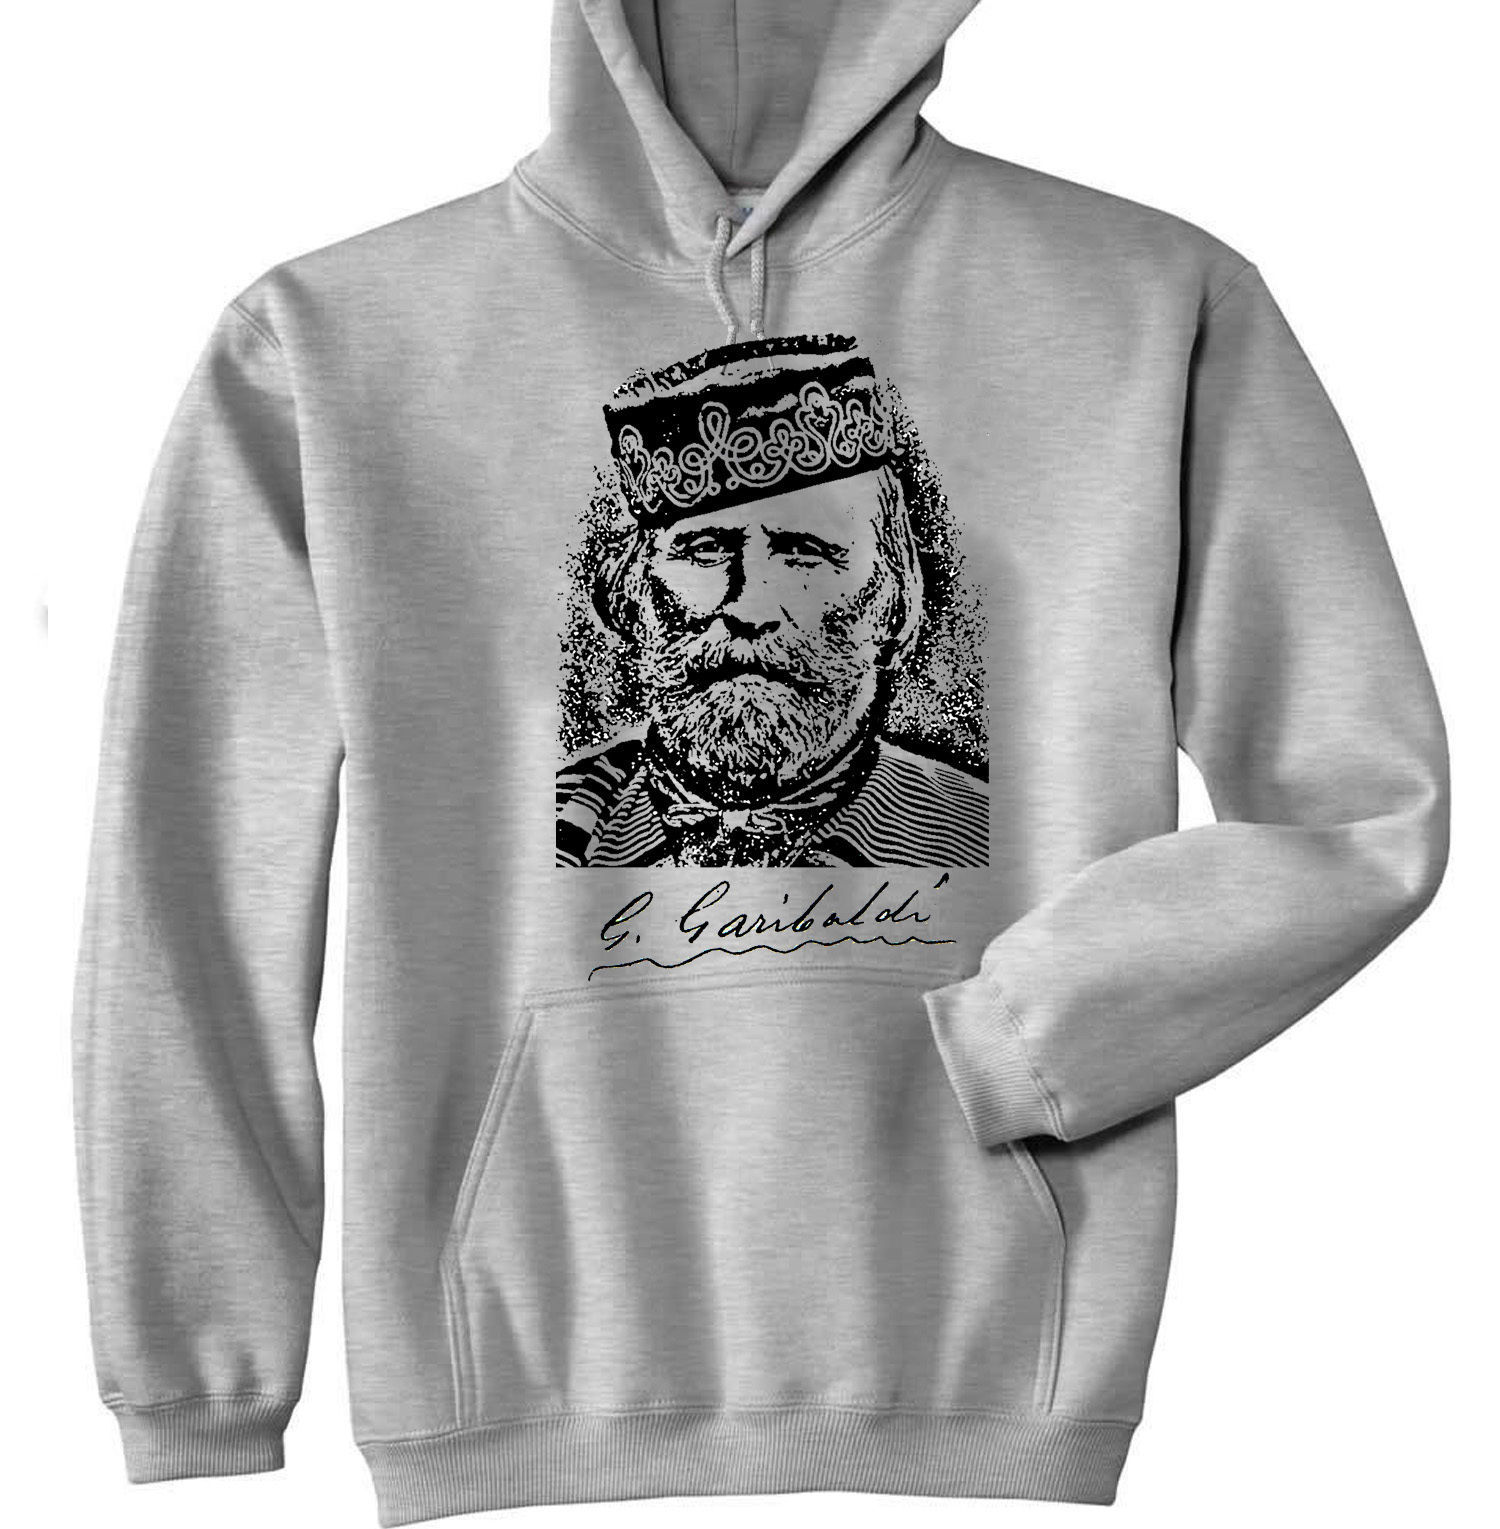 Primary image for GIUSEPPE GARIBALDI - NEW COTTON GREY HOODIE - ALL SIZES IN STOCK